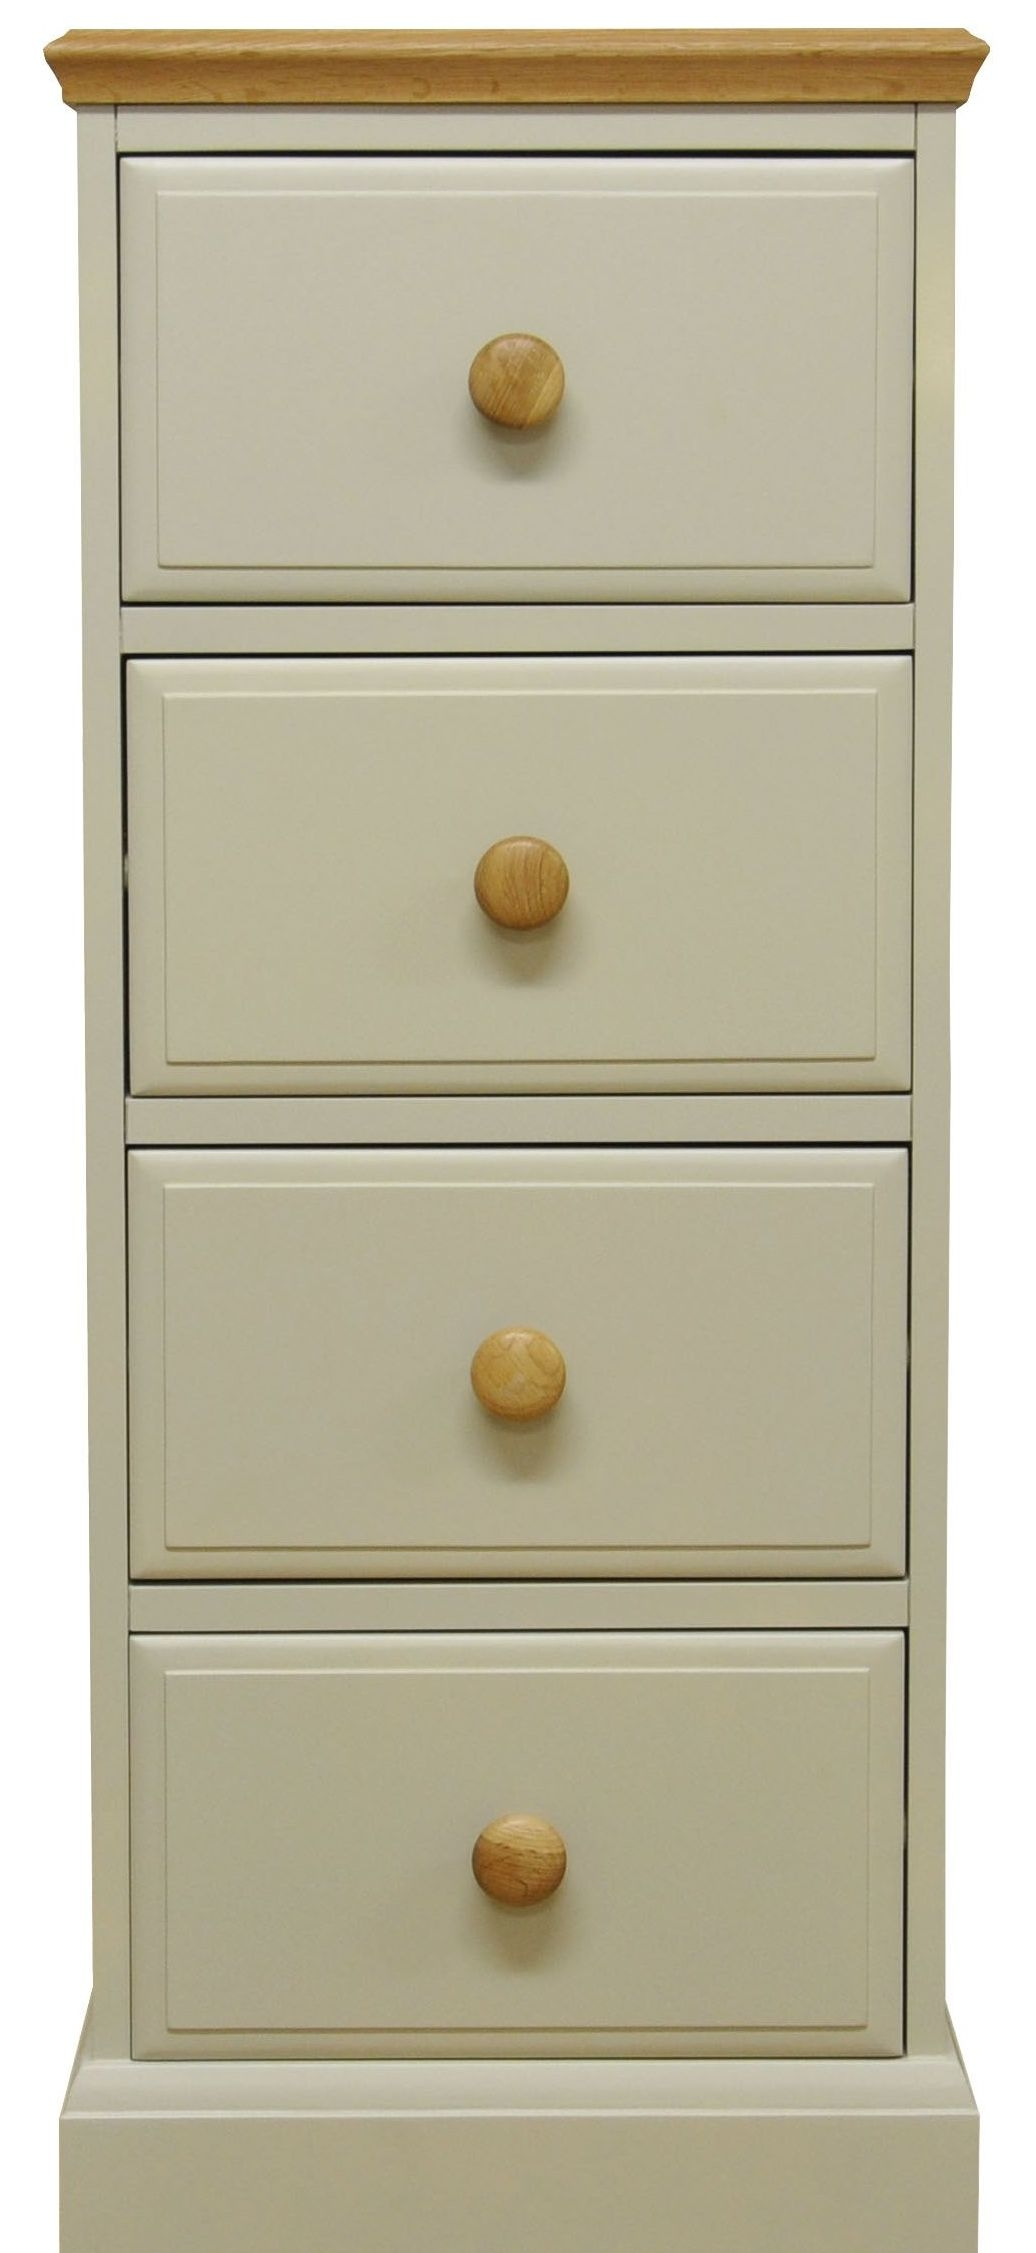 Arlington 4 Drawer Tall Chest - Oak and Stone Painted